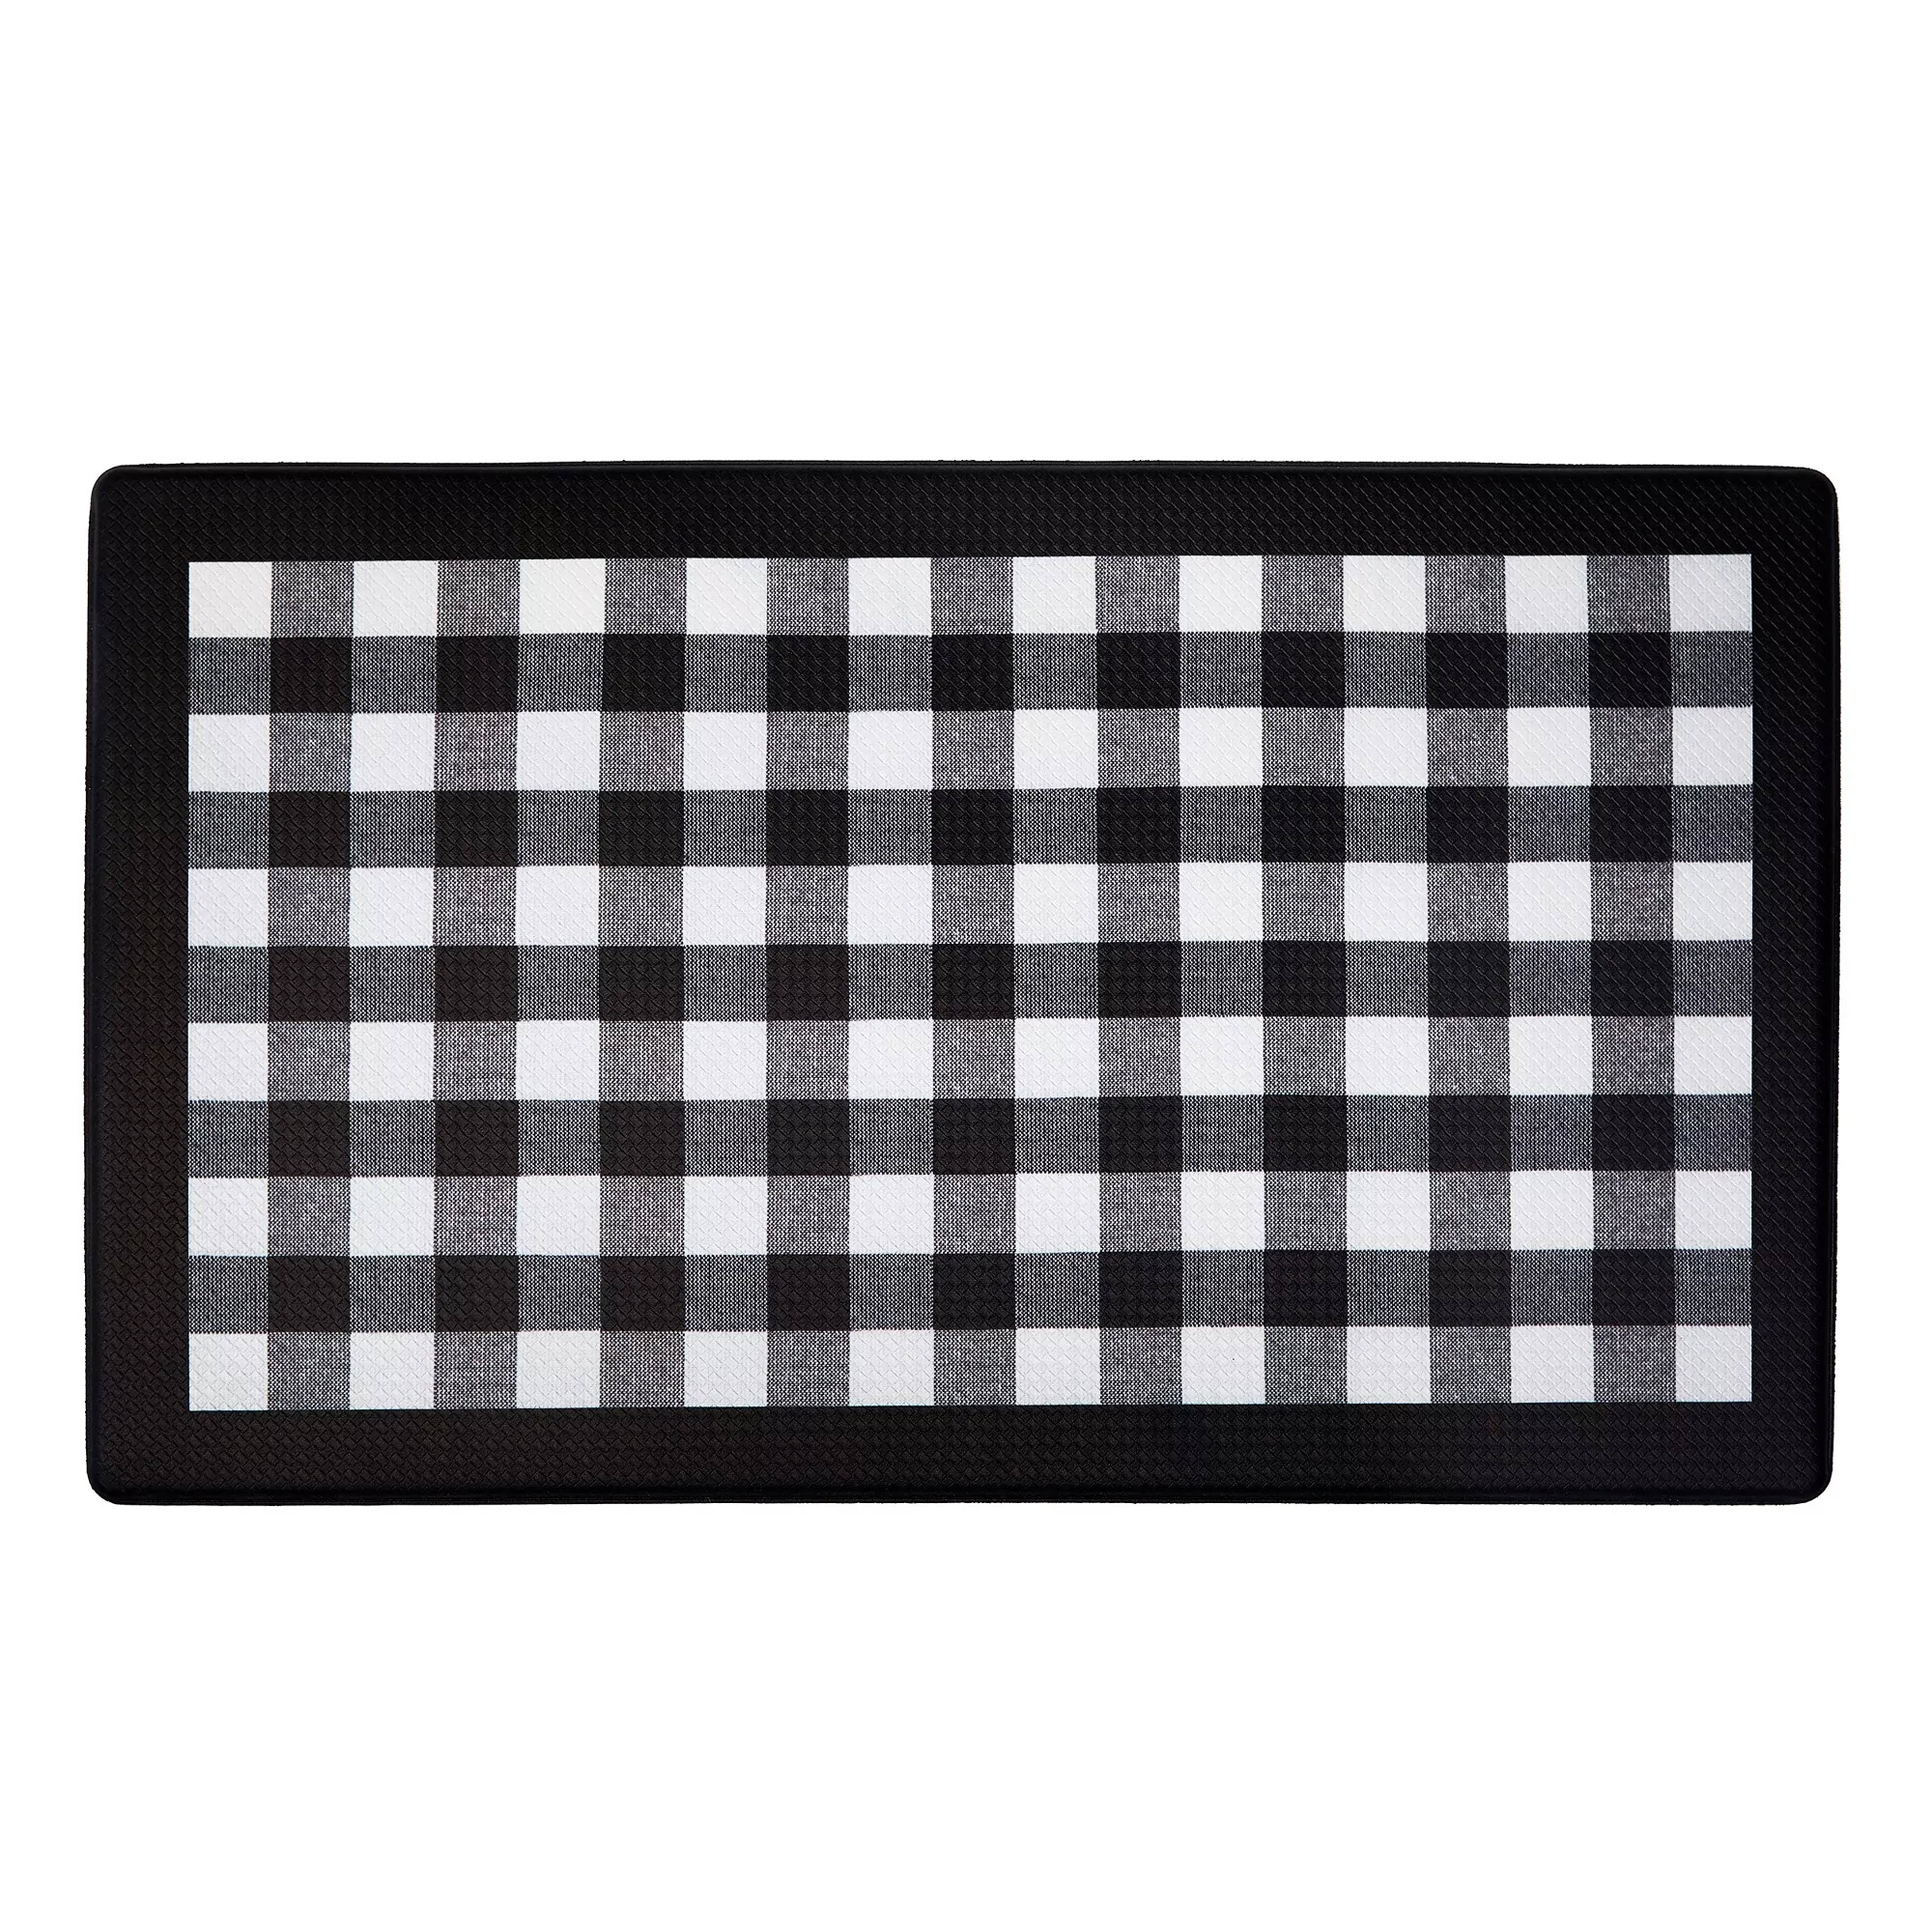 Details About Buffalo Check Printed Anti Fatigue Kitchen Floor Rug Mat 18 X 30 Black White